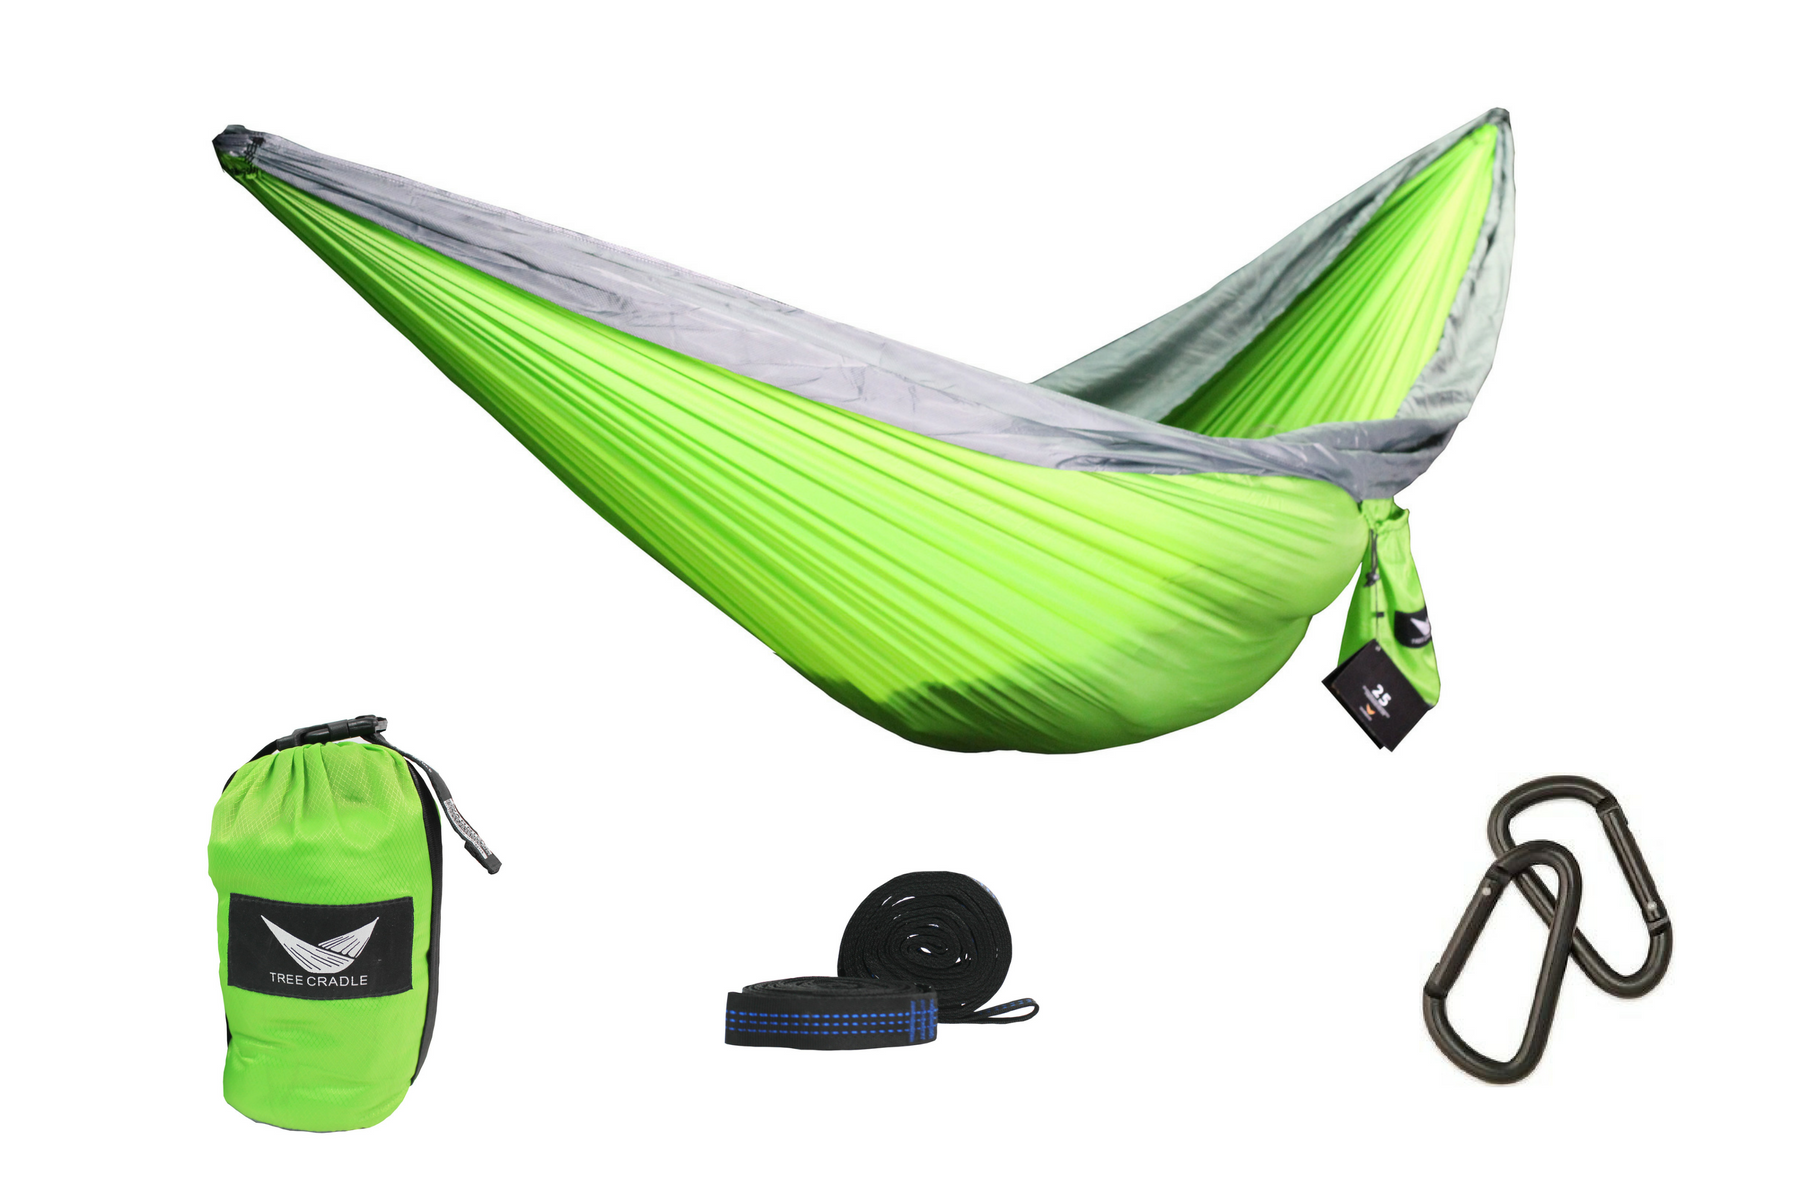 hammock shop single green hammocks sleeping garden that holds outdoor nylon support gear portable jbm for camp bedding road forbidden hiking bags online buy double lbs carabiners included camping ropes from